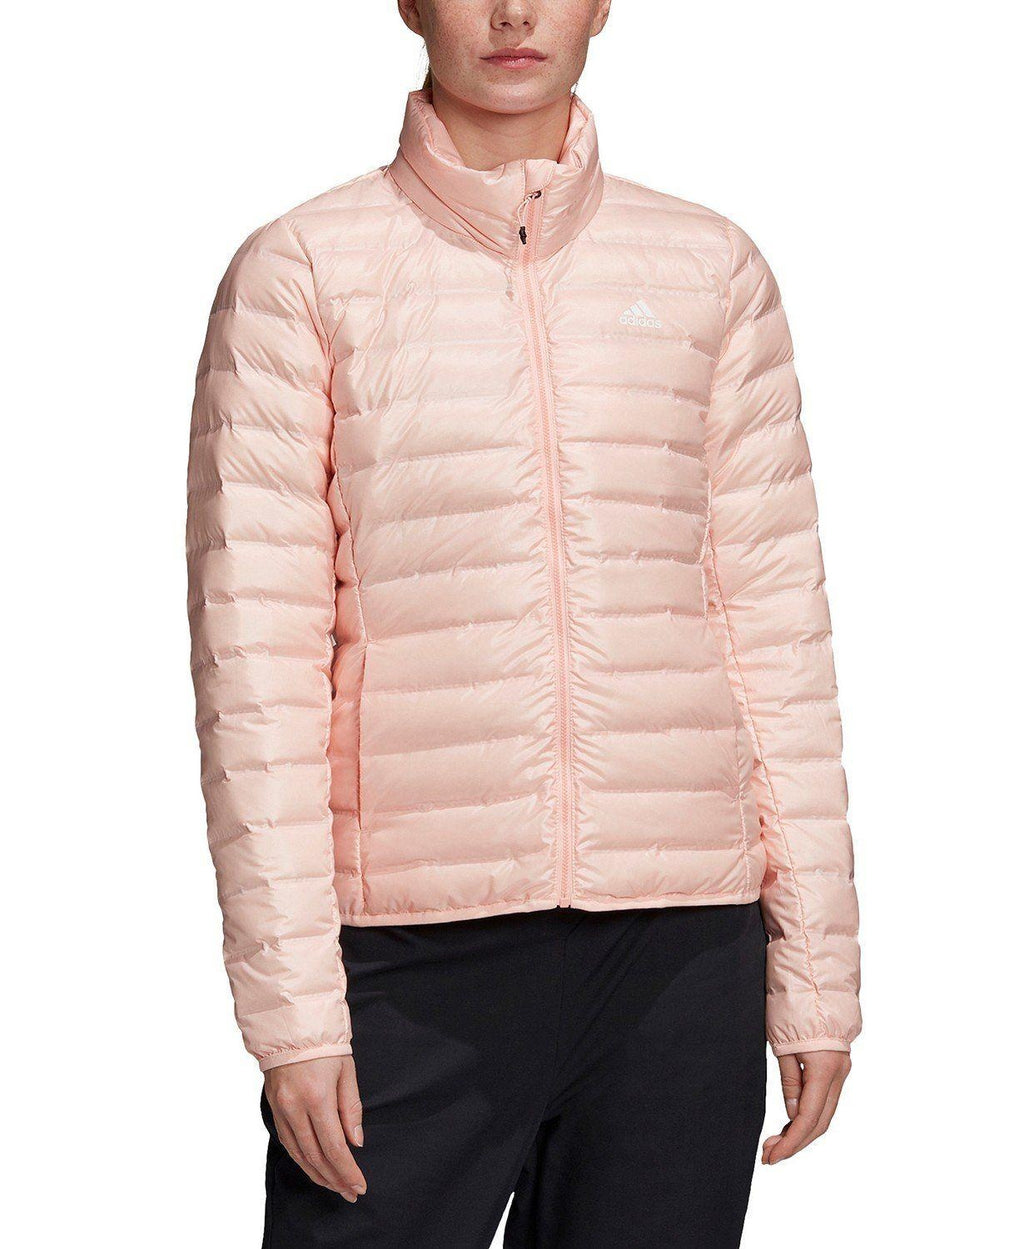 adidas Varilite Down Puffer Jacket  Large Brand New,your-fashions-for-less,adidas,Jackets.